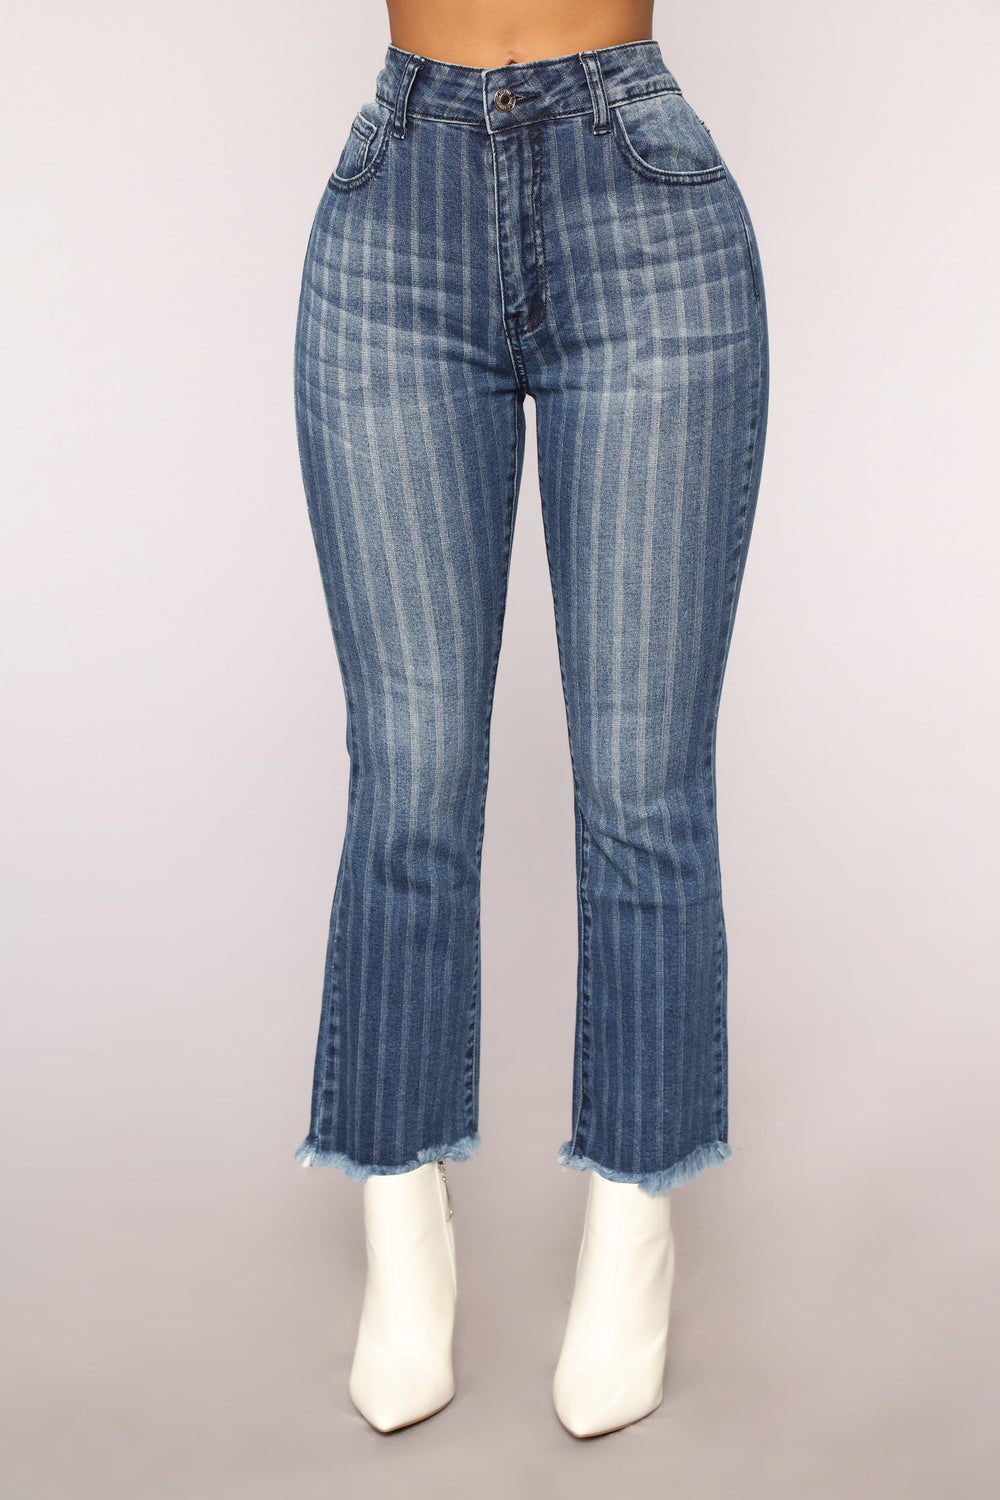 All Aboard Striped Ankle Jeans - Dark Wash